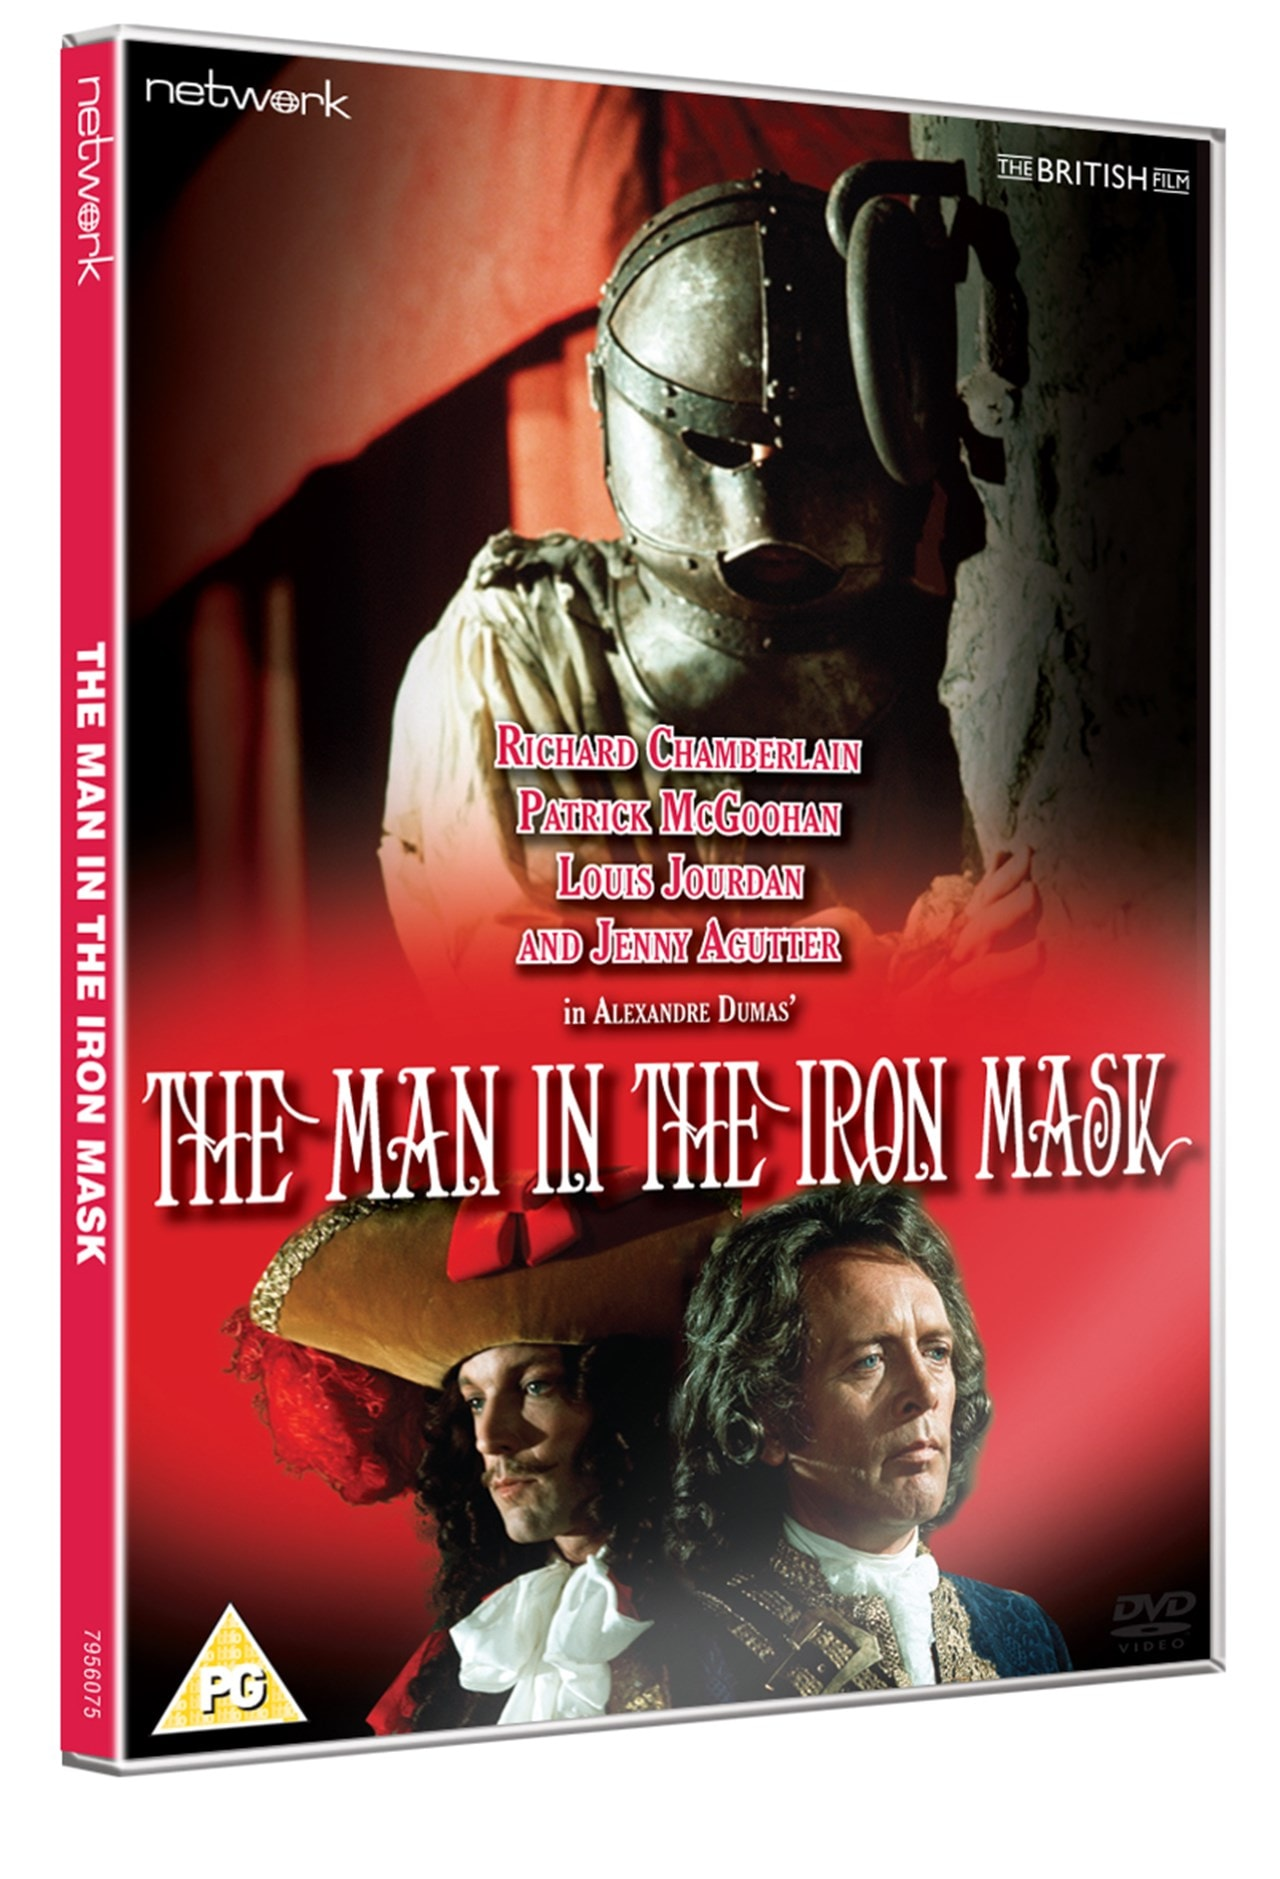 The Man in the Iron Mask - 2